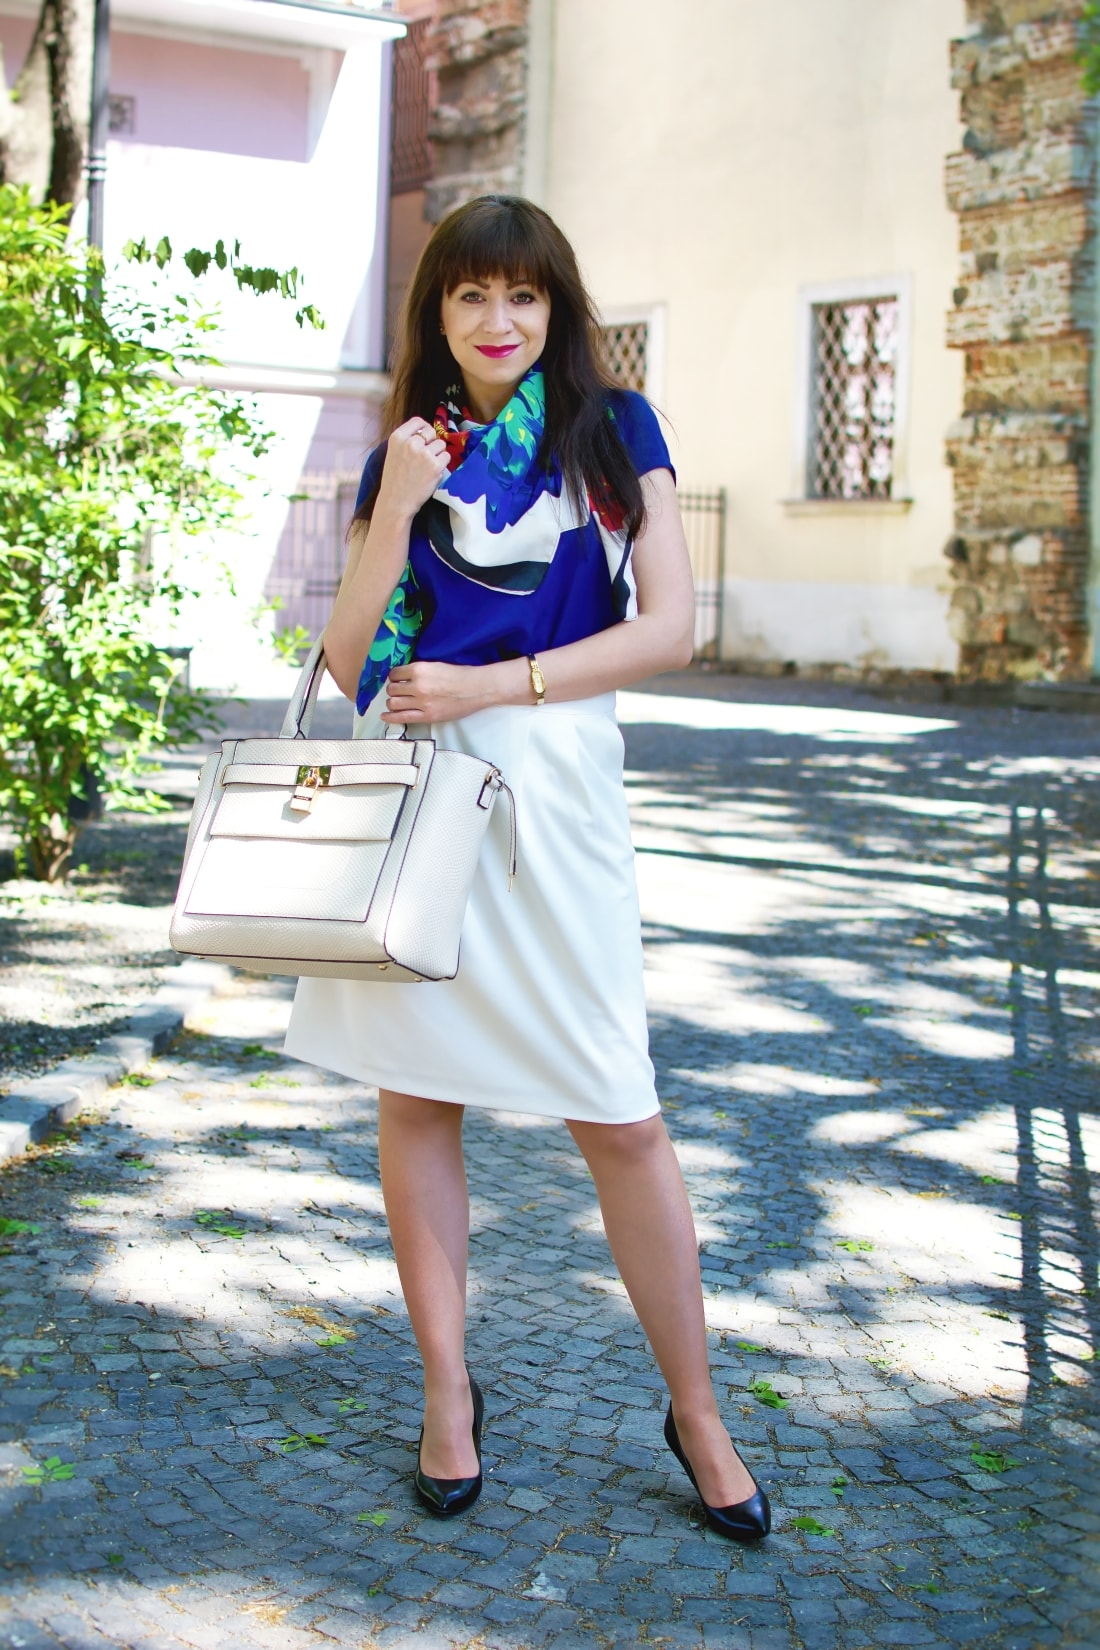 katharine-fashion-is-beautiful-blog-mix-kvetov-a-satka-1-blogger